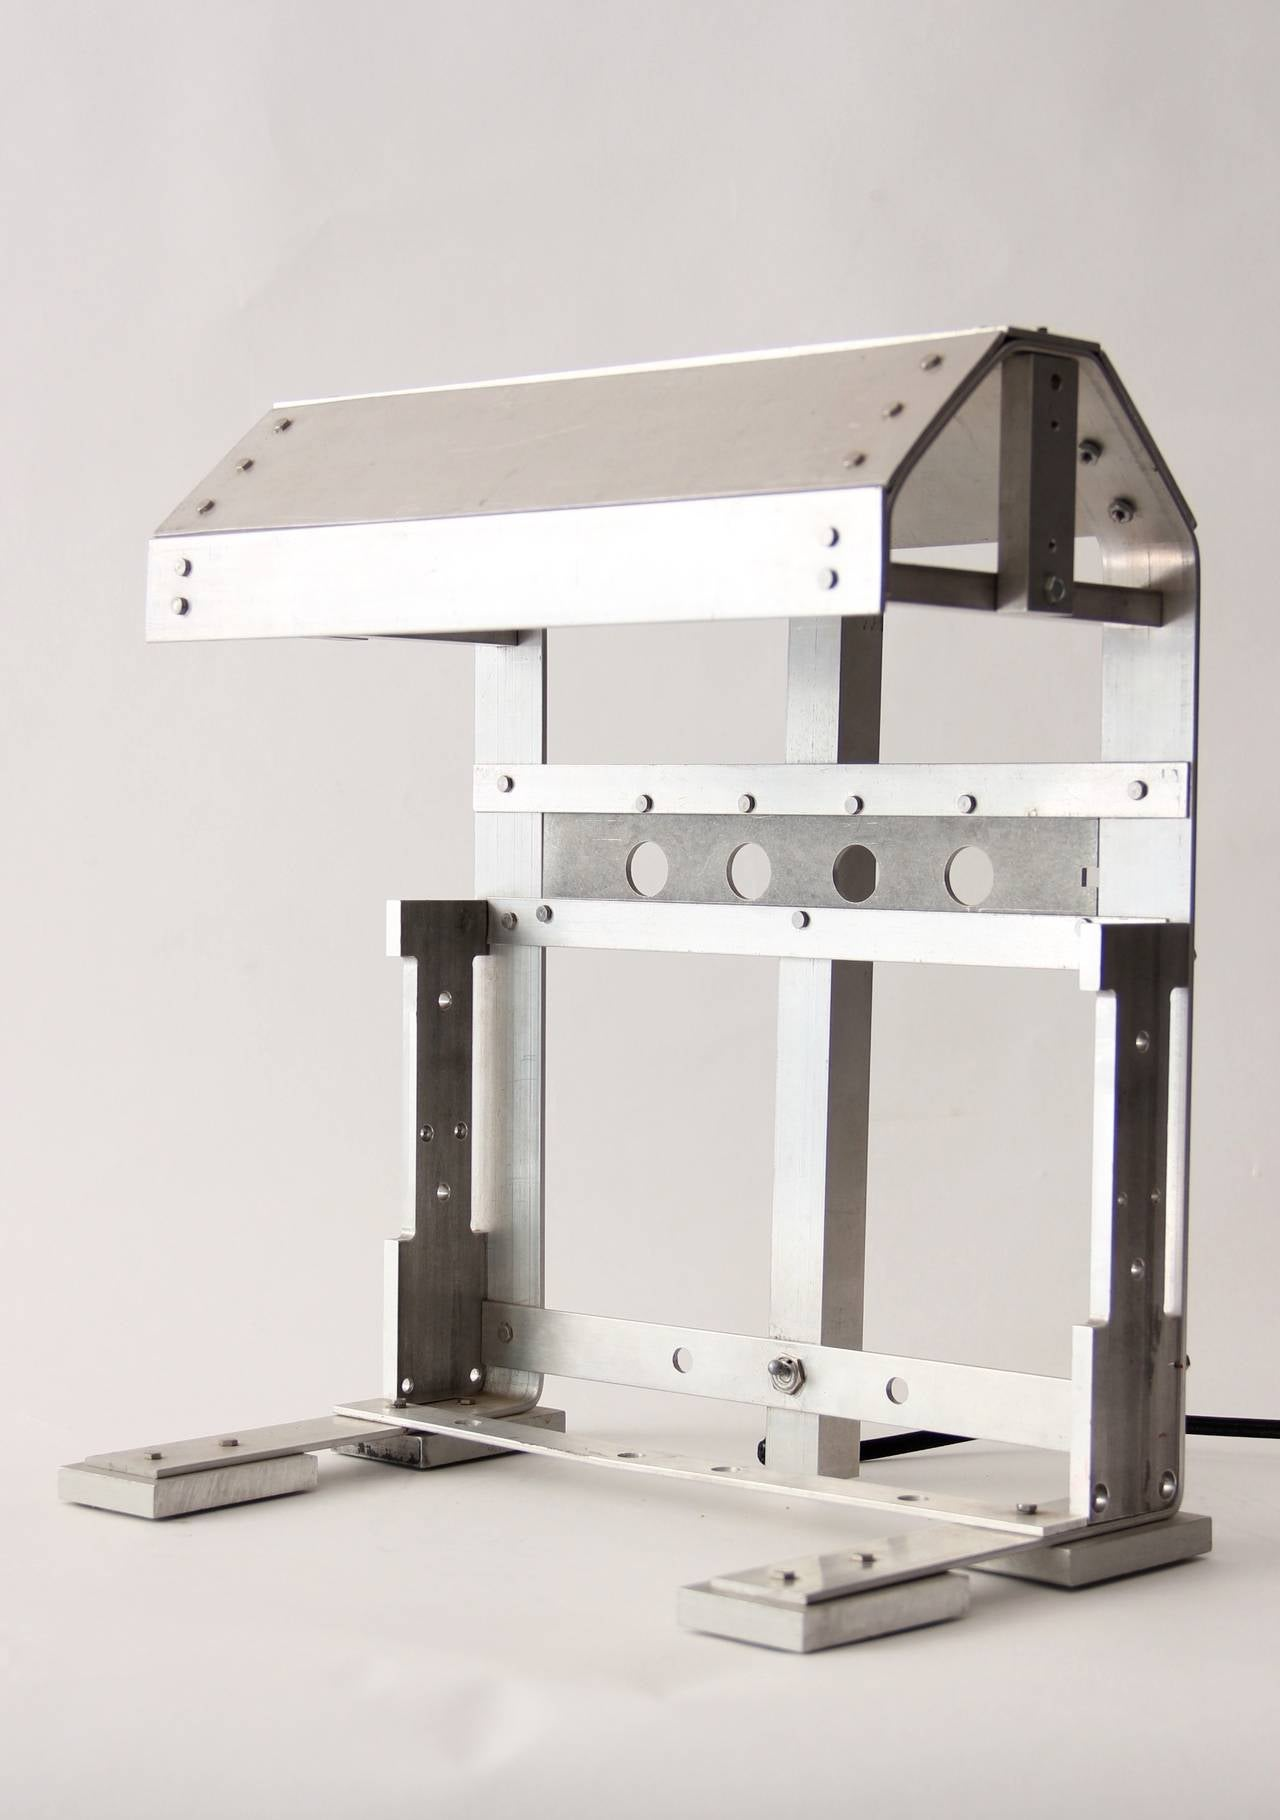 A self manufactured and designed desk lamp with great attention to construction and Industrial sensibility.